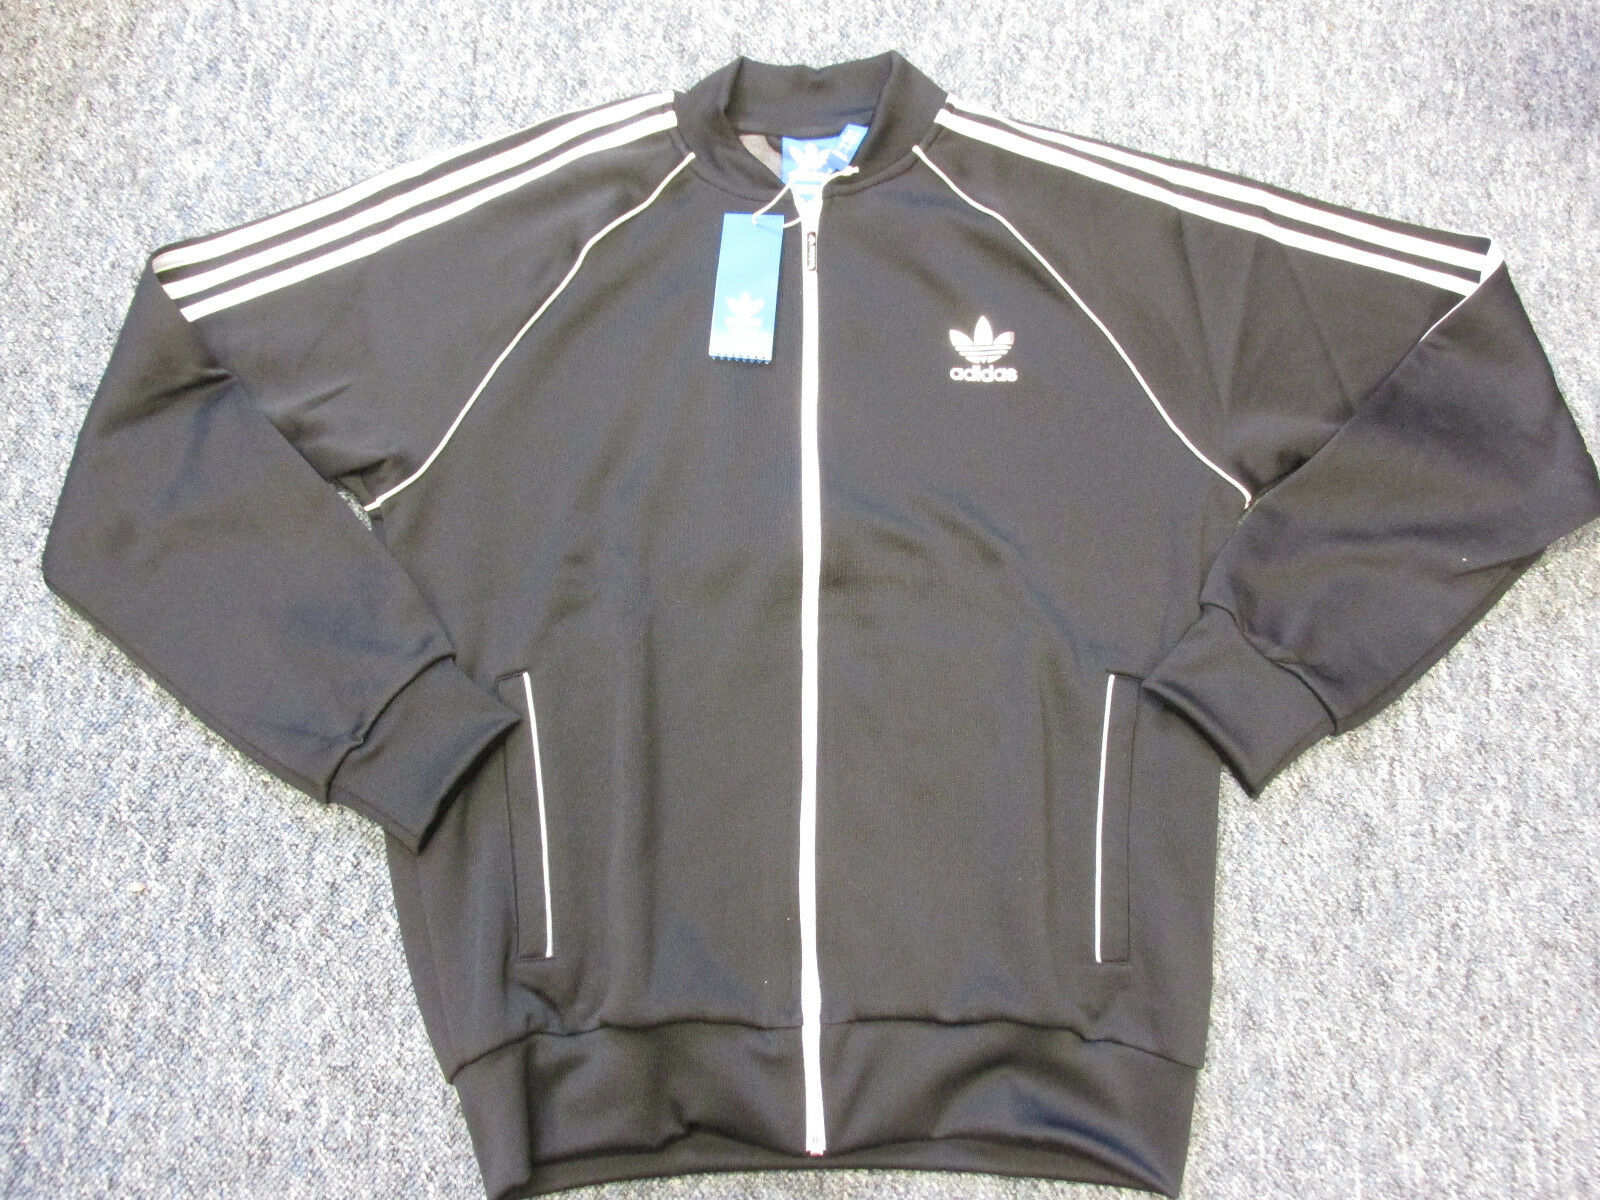 Adidas Originals Superstar Innenlinie X Met Tt Herrenjacke AZ9396